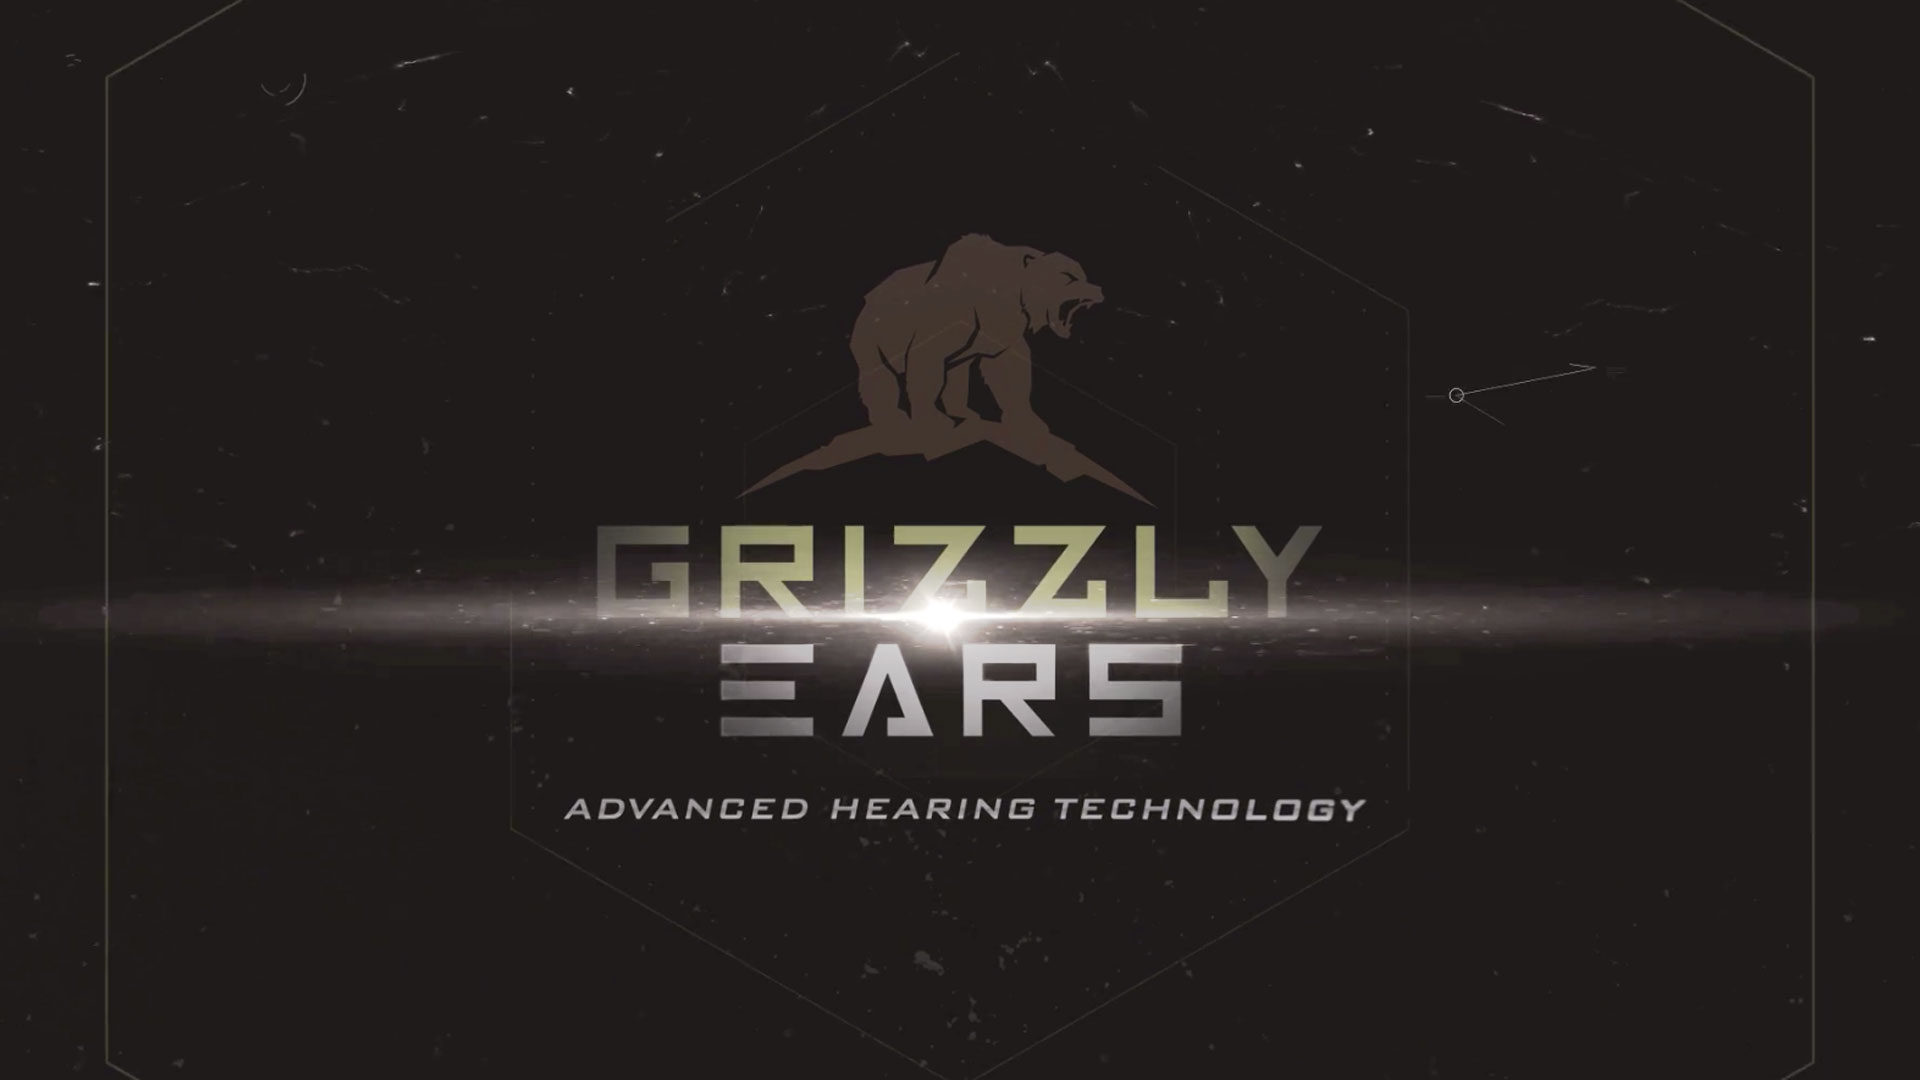 Grizzly Ears Promo